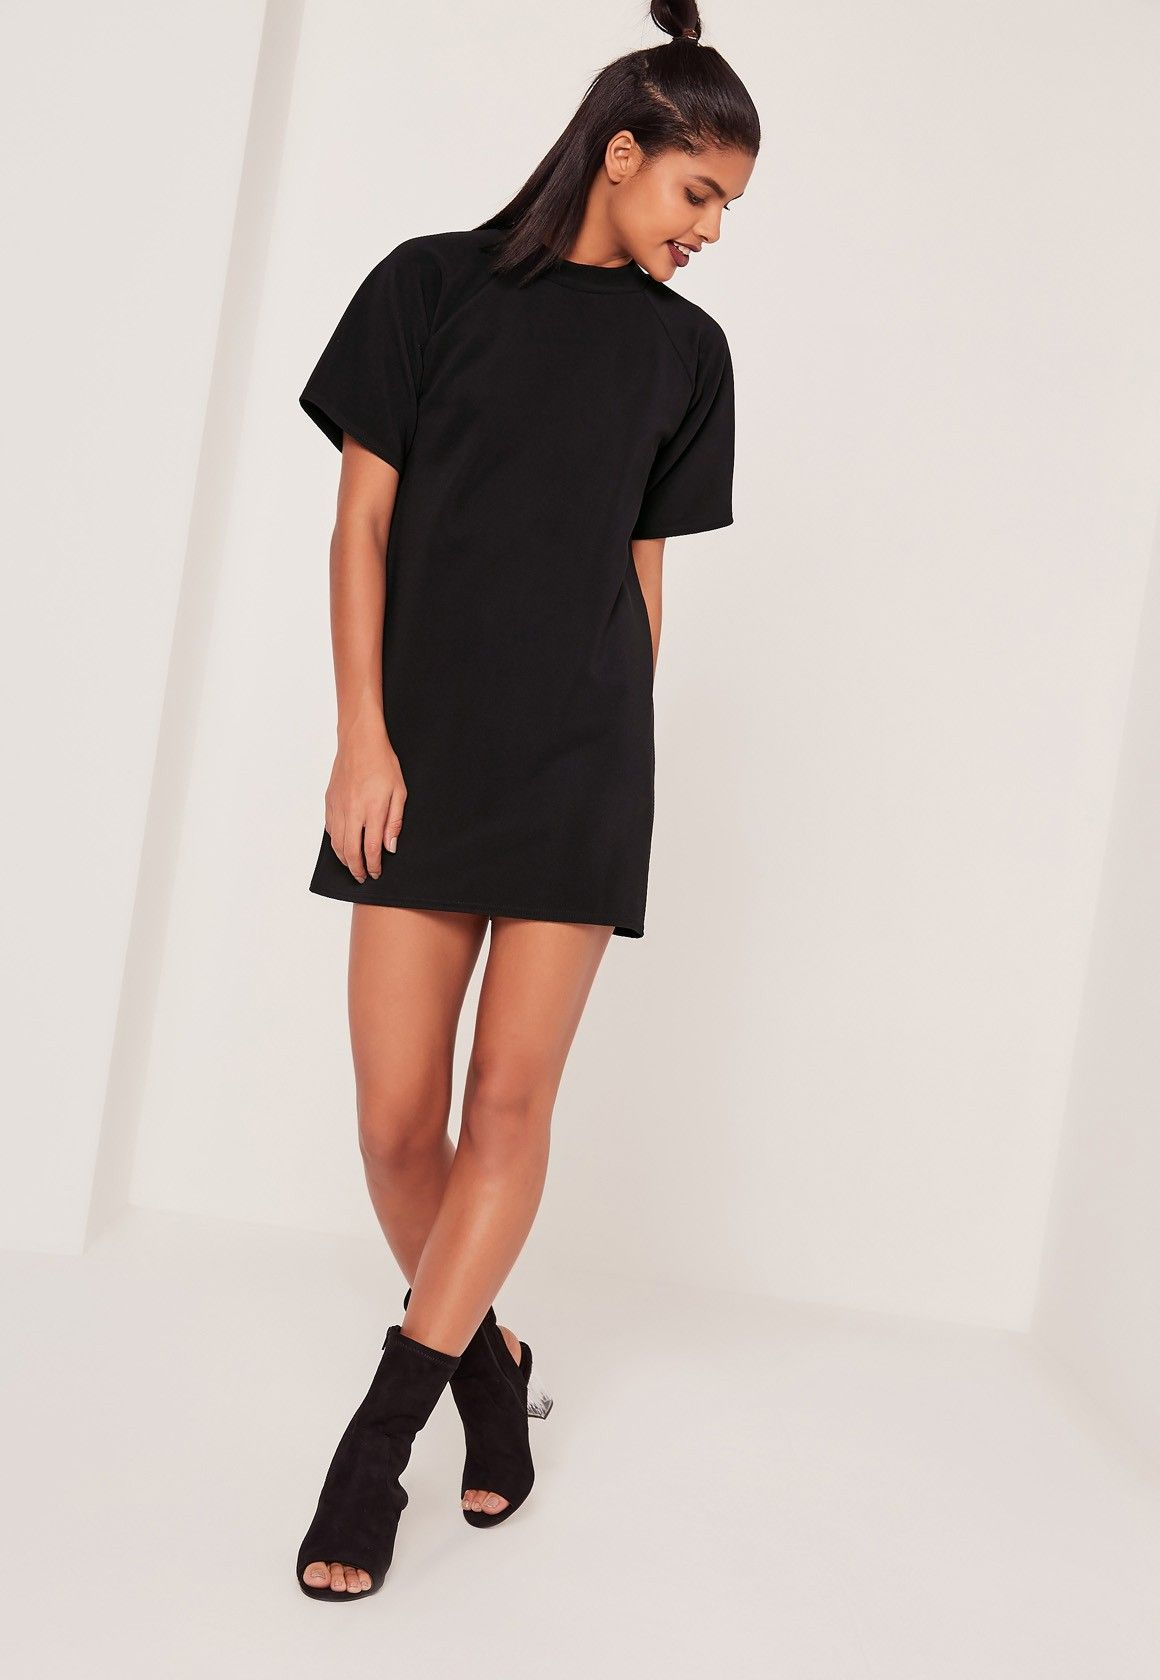 65438ebce33c Missguided - Short Sleeve Oversized T-Shirt Dress Black